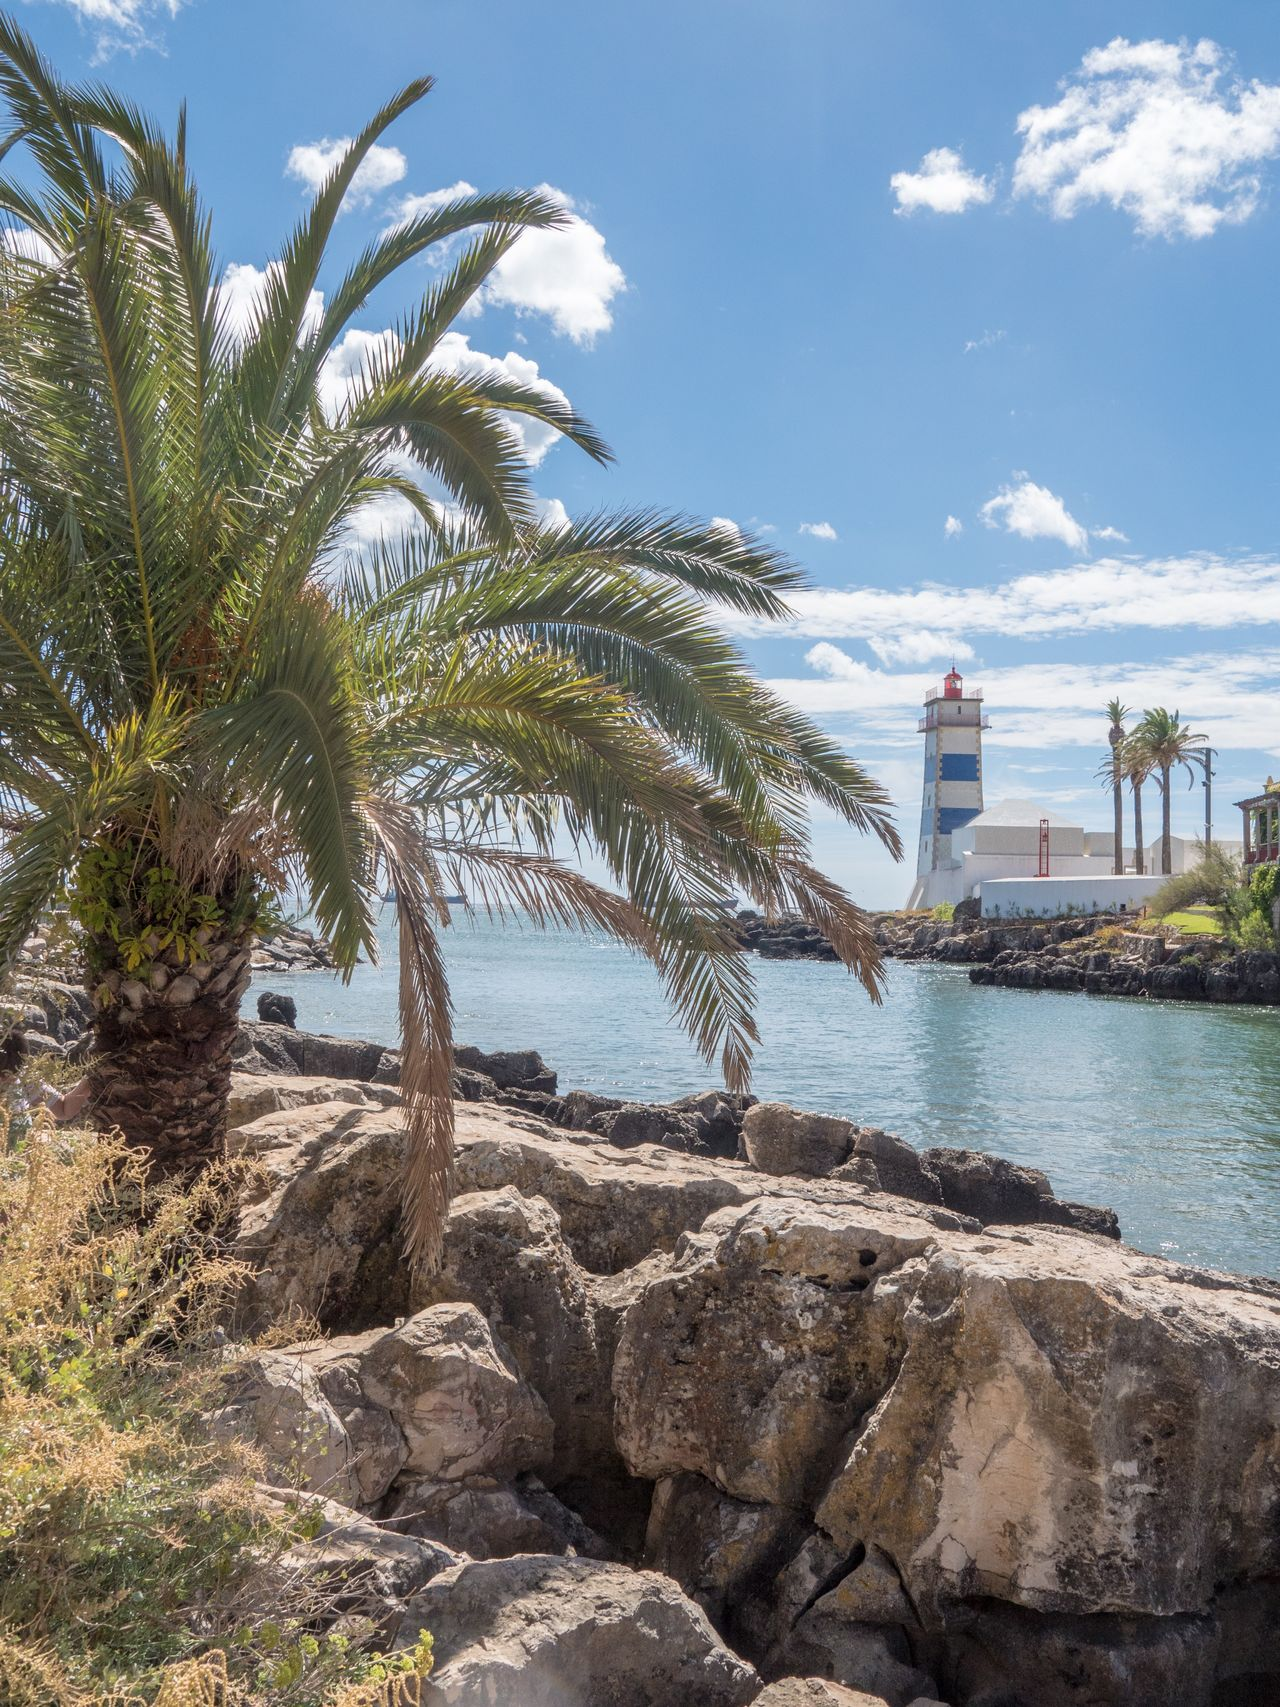 Palmen und Leuchtturm | Palm trees and lighthouse Palm Tree Lighthouse Portugal Lagos Leuchtturm Sea Water Sun Rocks